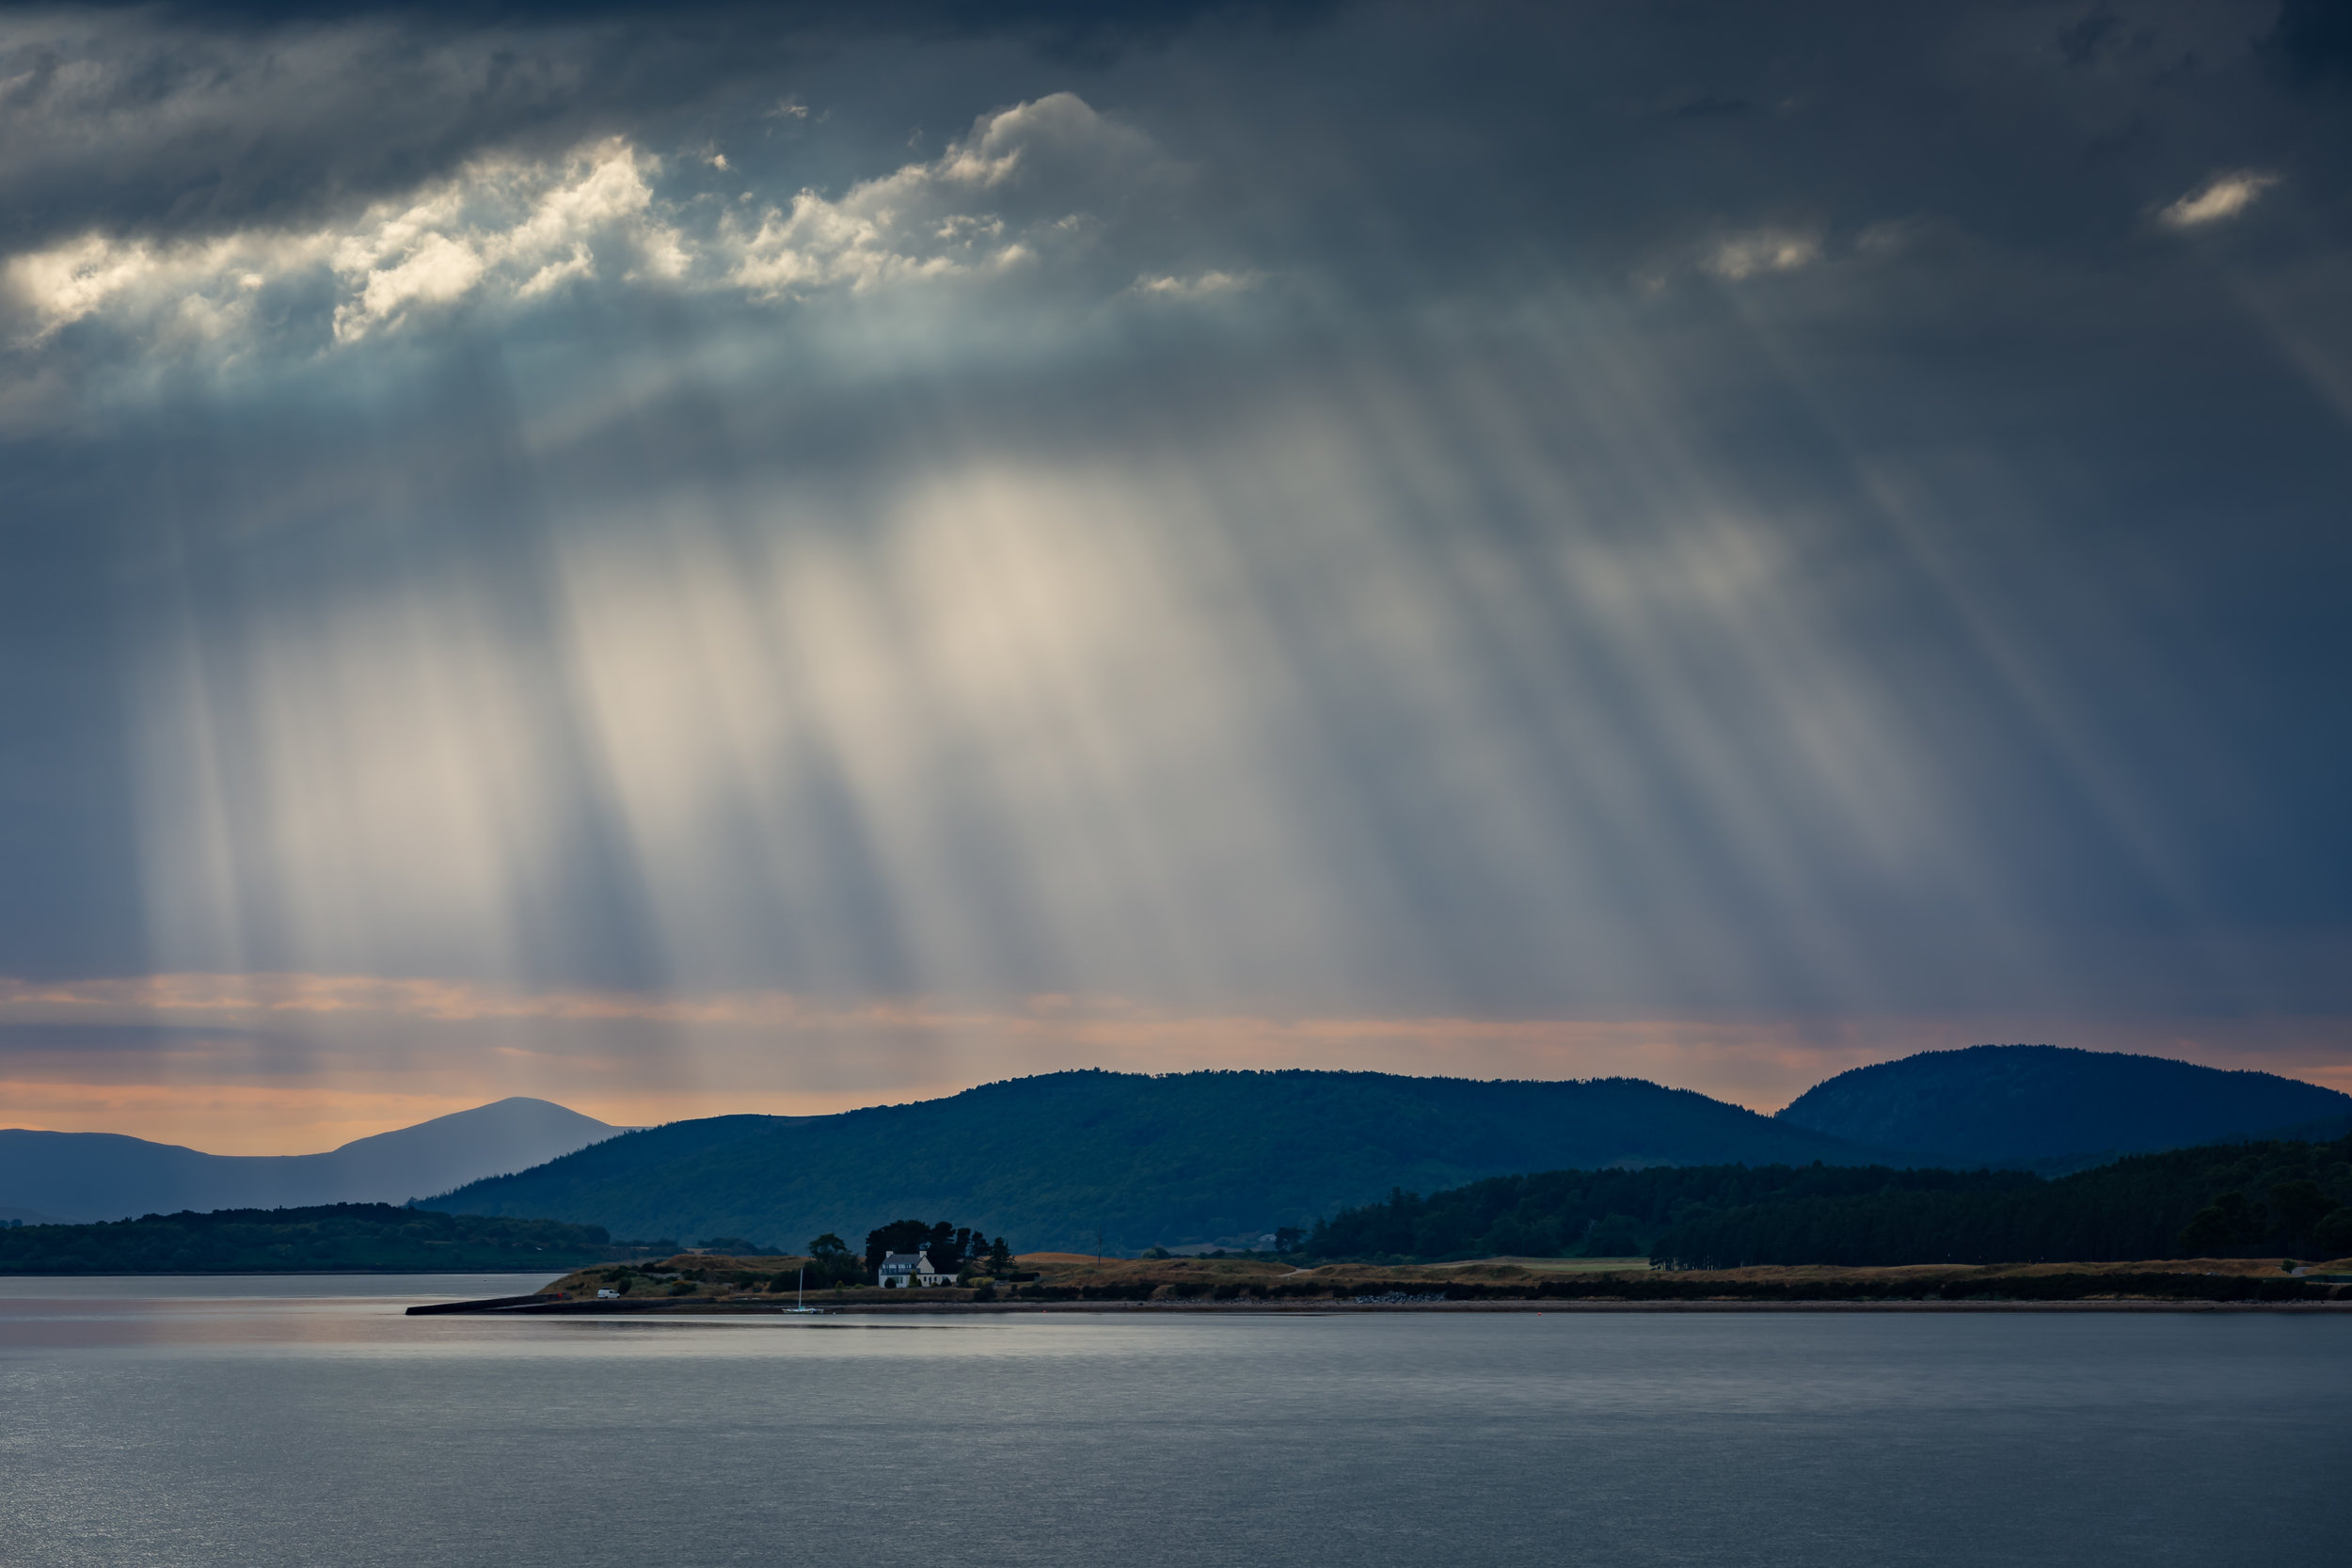 Highland Adventure September 2019 - Inverness, the capital of the Scottish Highlands, is our base for this 3 day workshop. Inverness is a gateway to incredible landscapes, vibrant seascapes and of course the famous Loch Ness. Suitable for photographers from beginner to experienced.